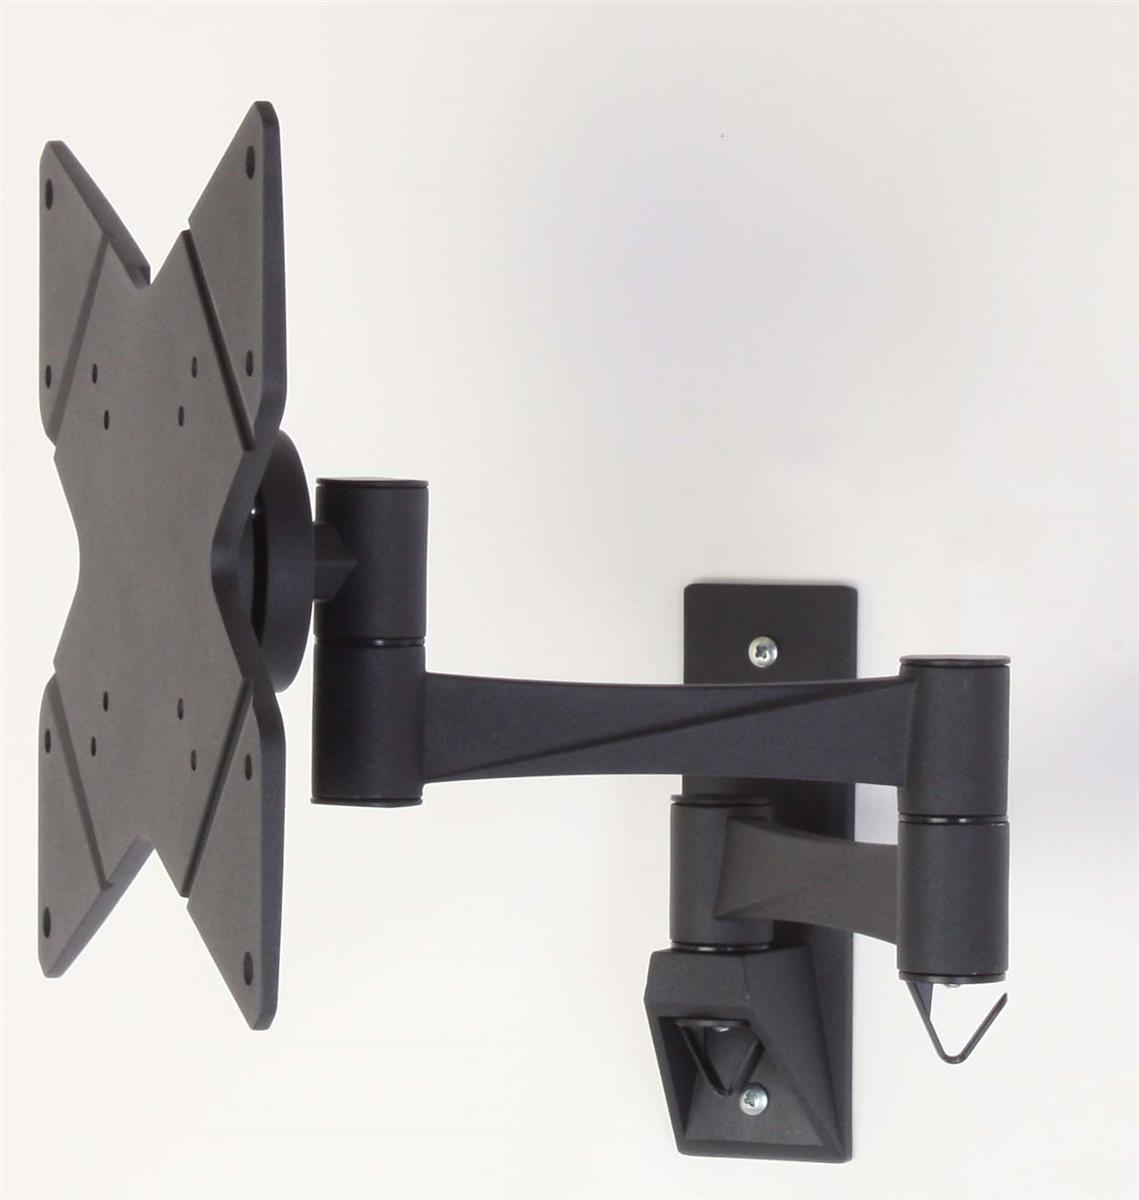 Displays2go TV Wall Mount with Articulating Arm Fits Moni...